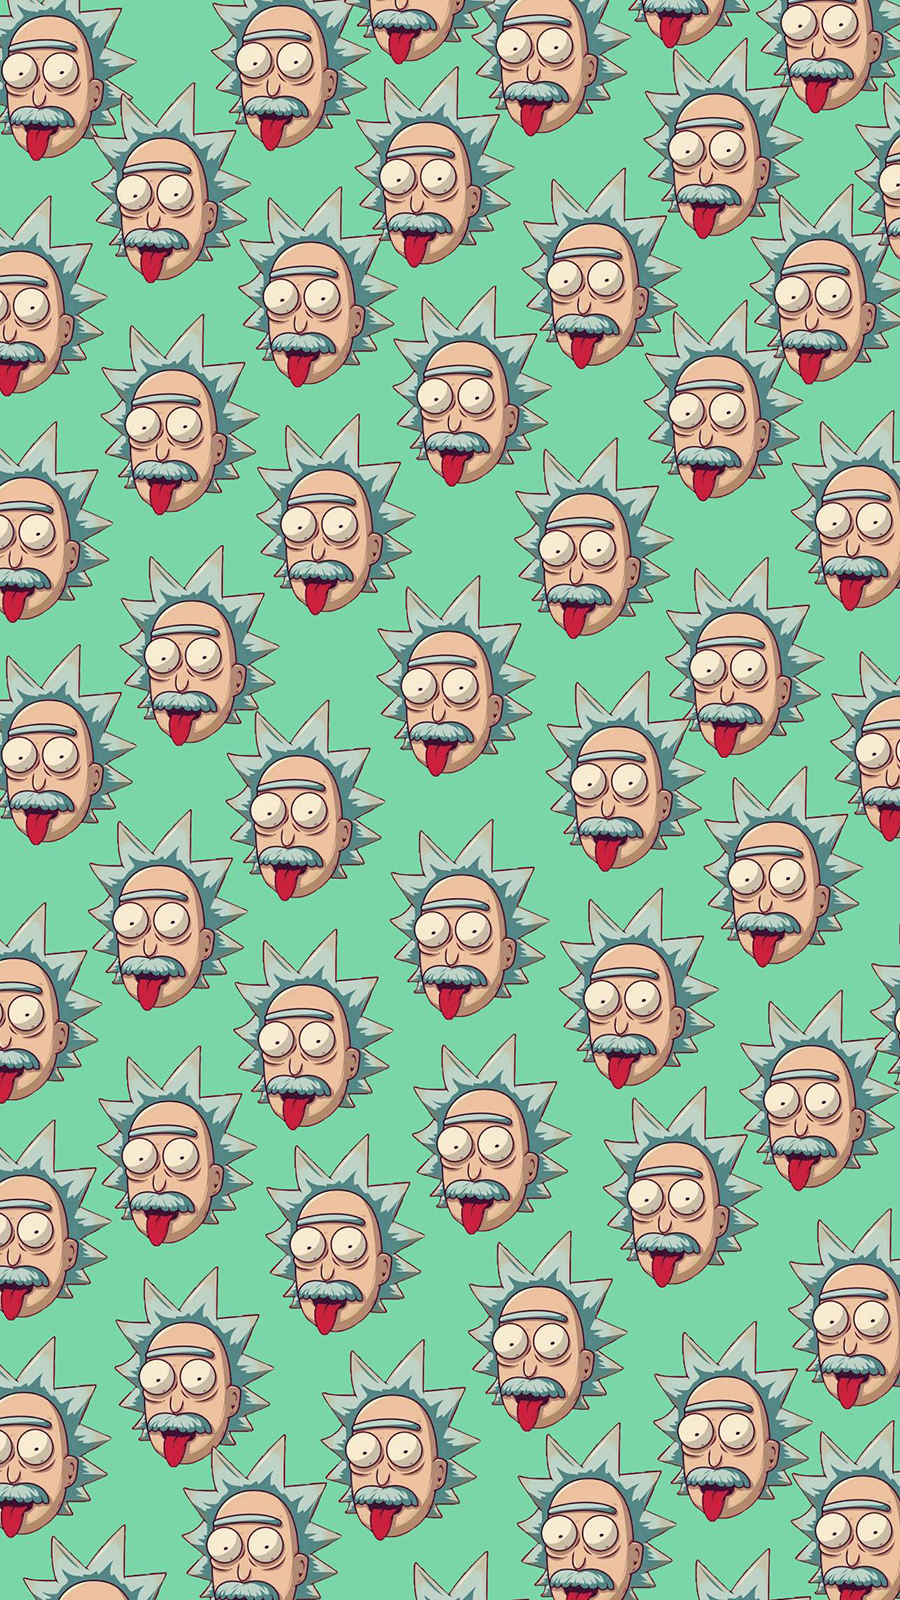 Rick and Morty Most Popular Wallpapers Now Download For Your Device